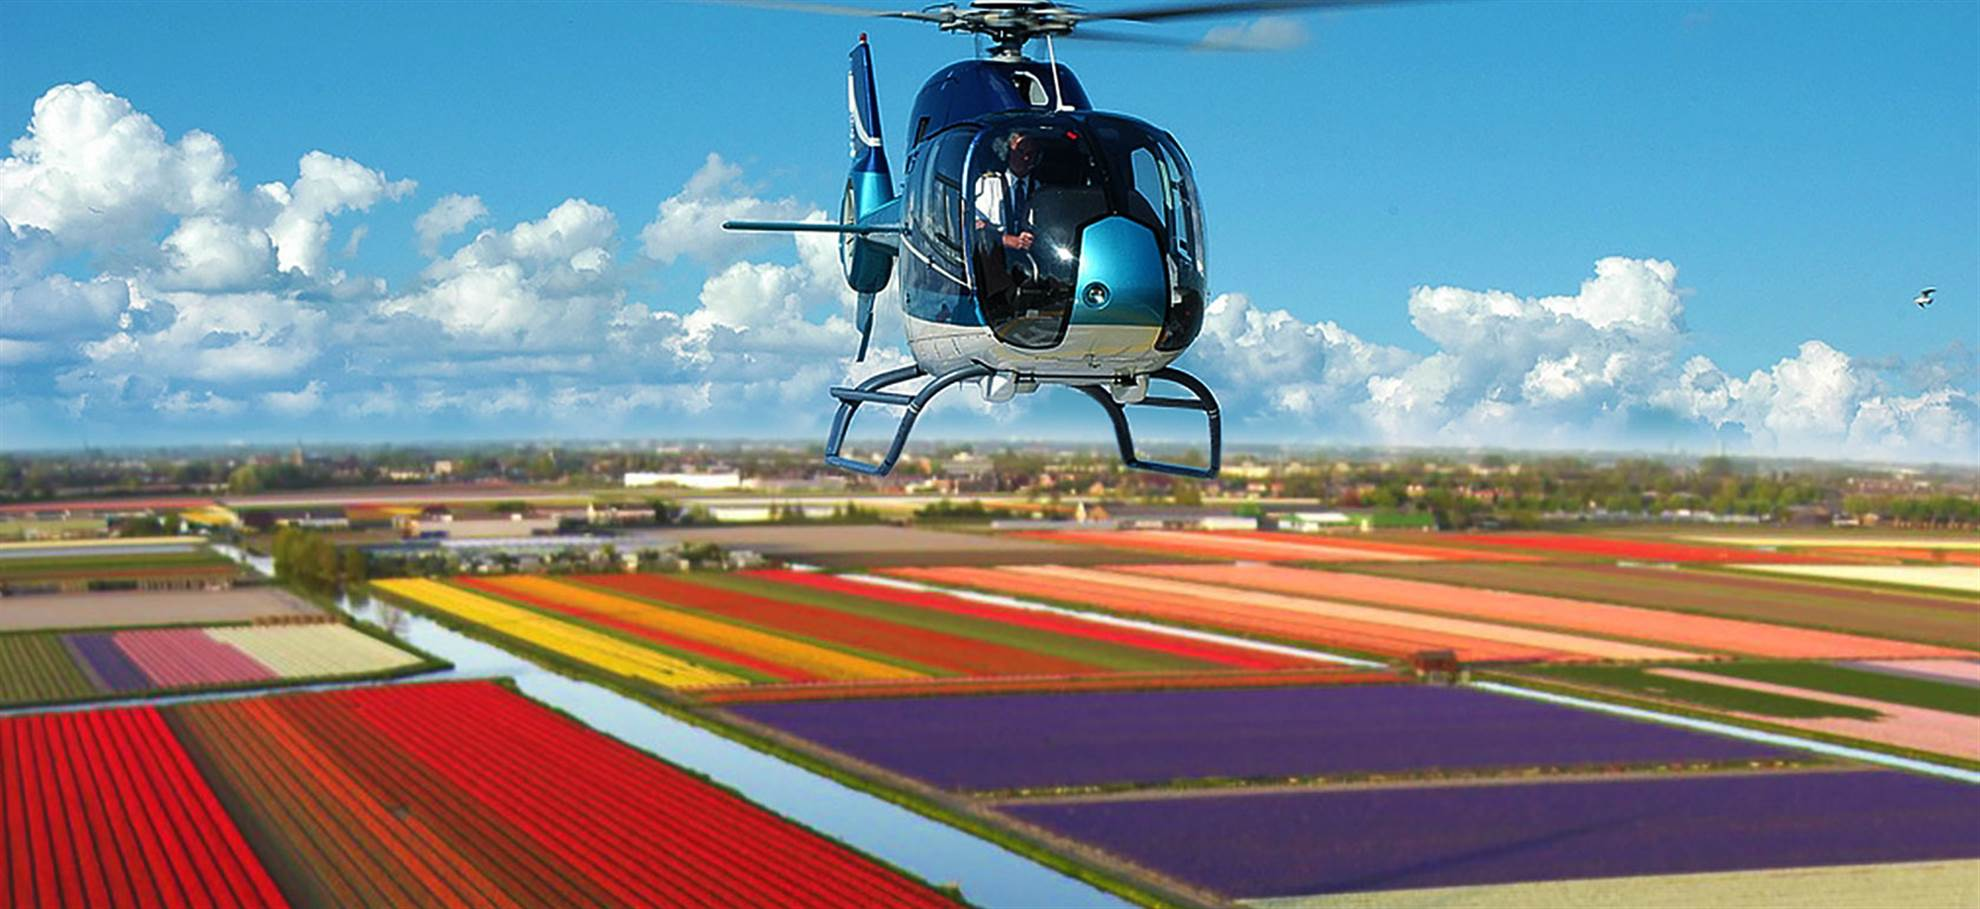 Keukenhof Helicopter Flight 2021